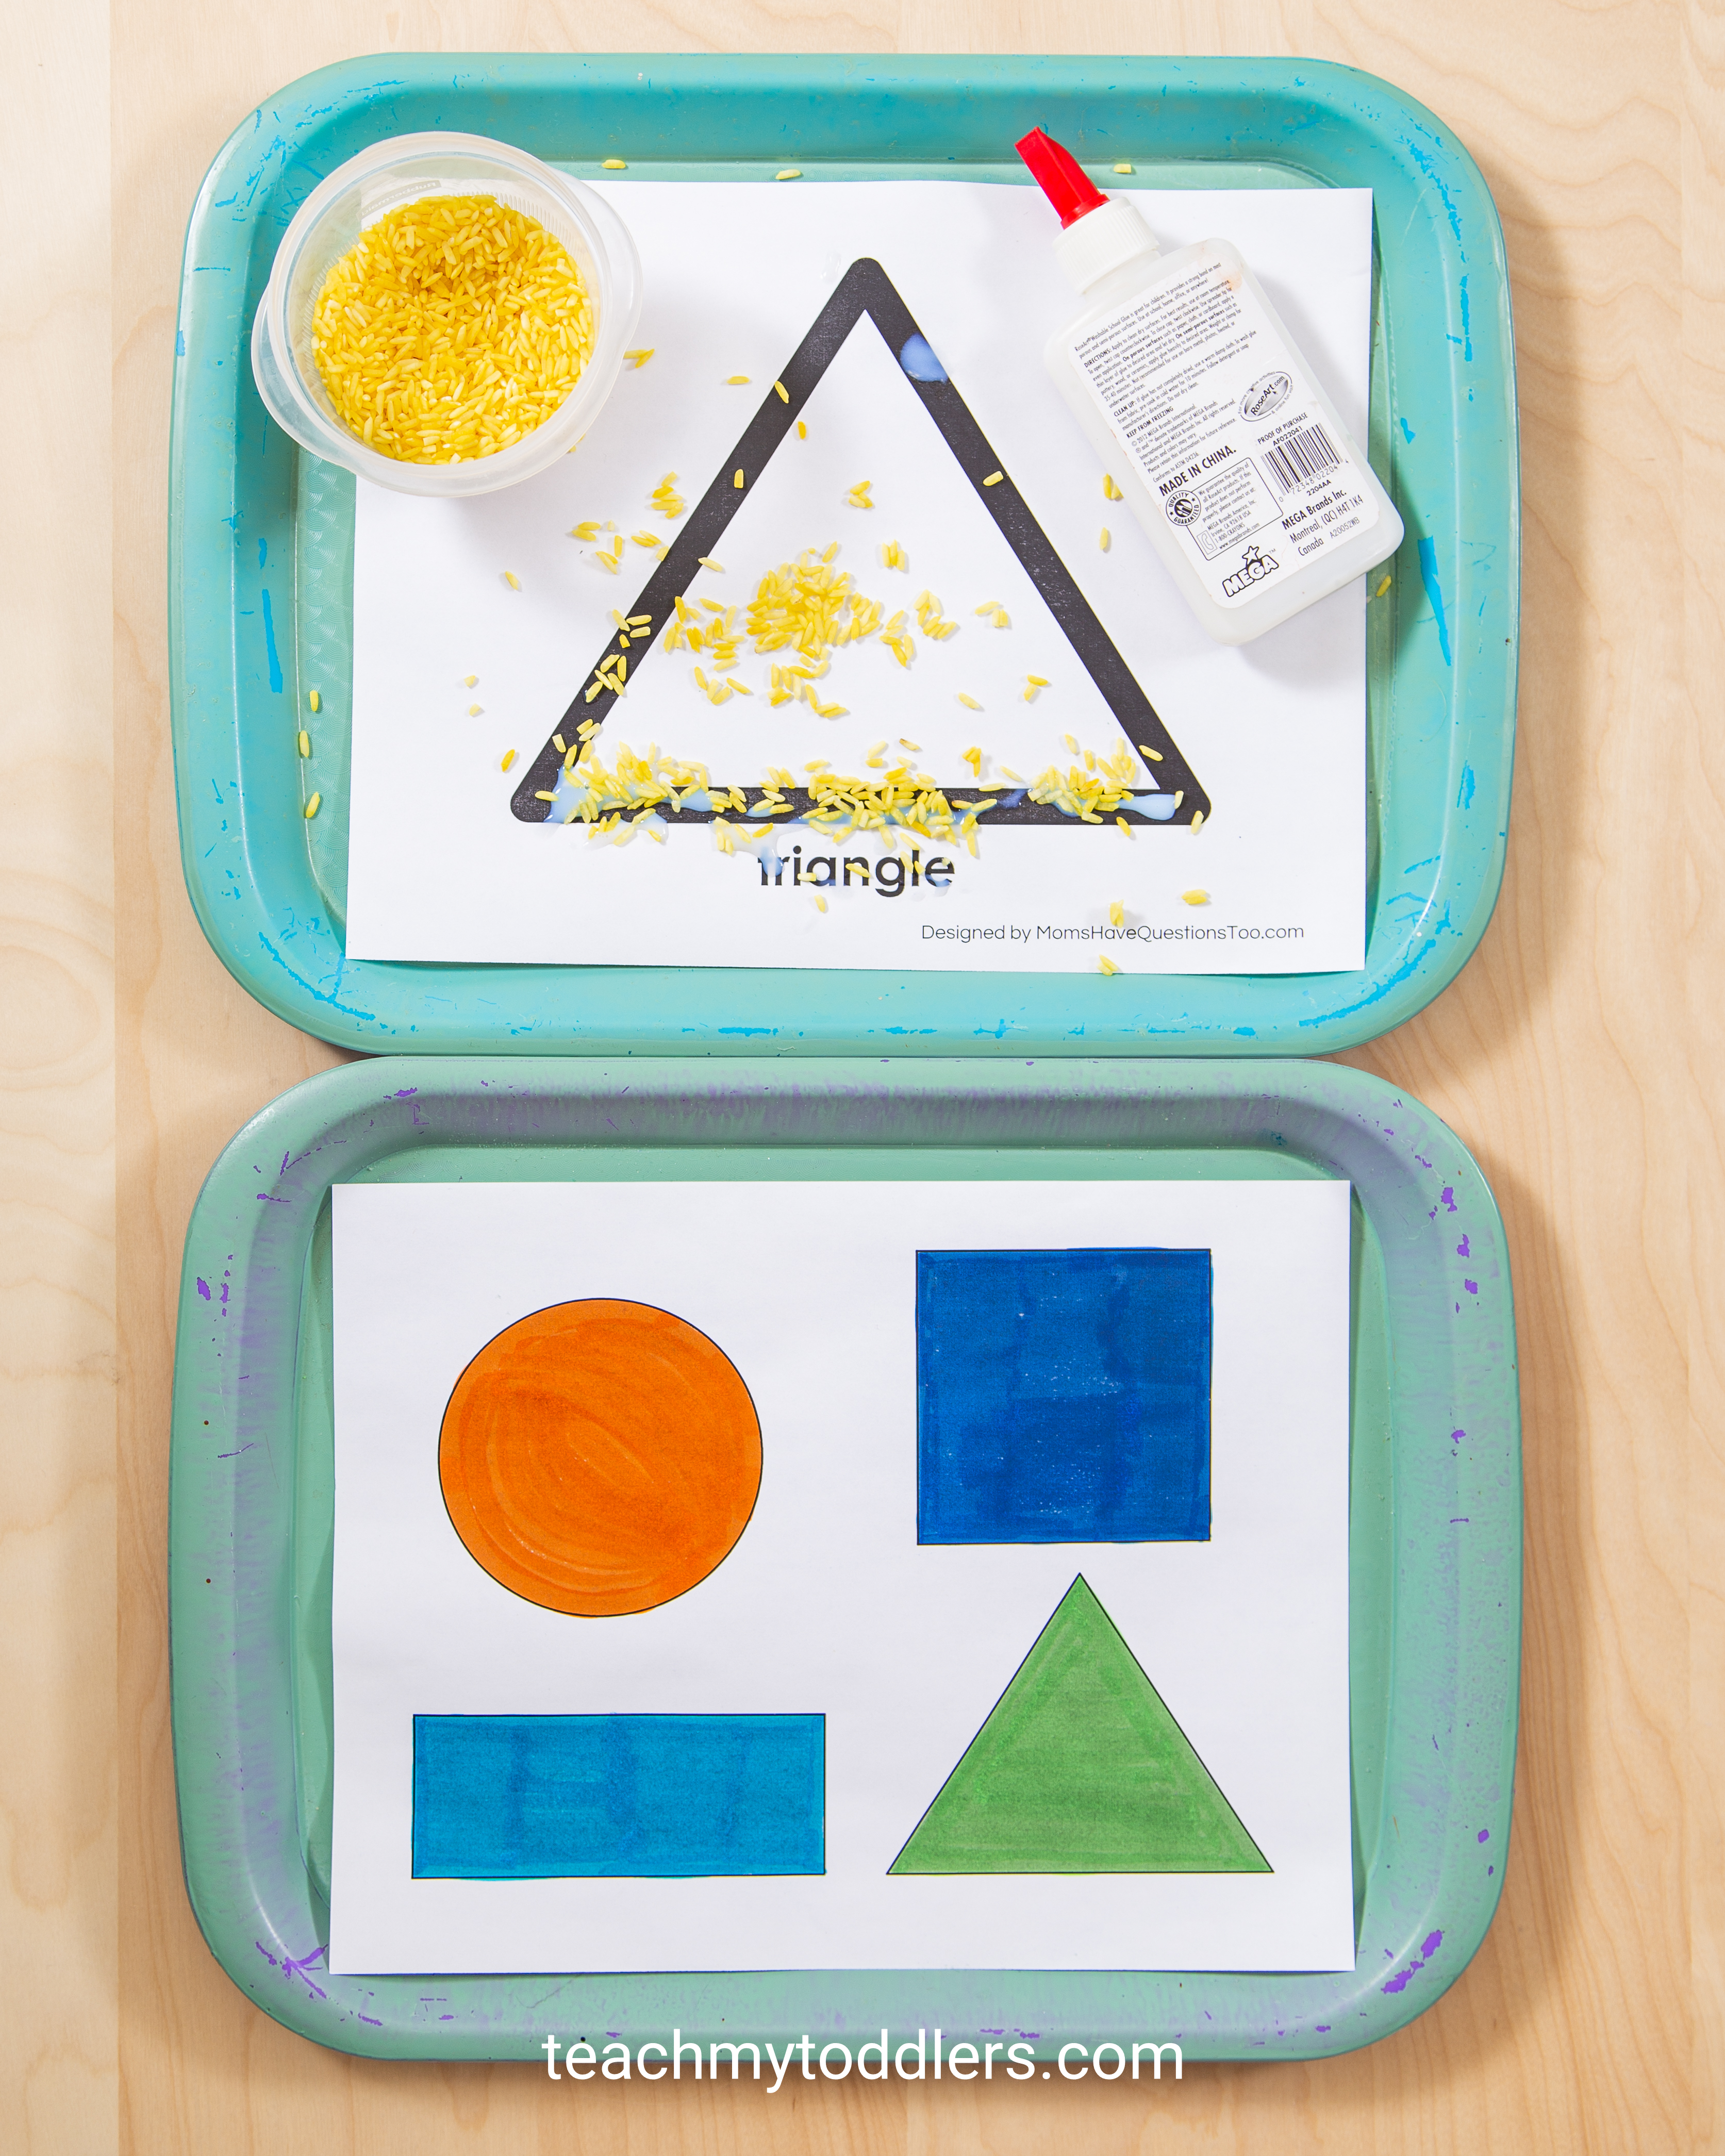 Find out how to use these triangle activities to teach your toddlers shapes